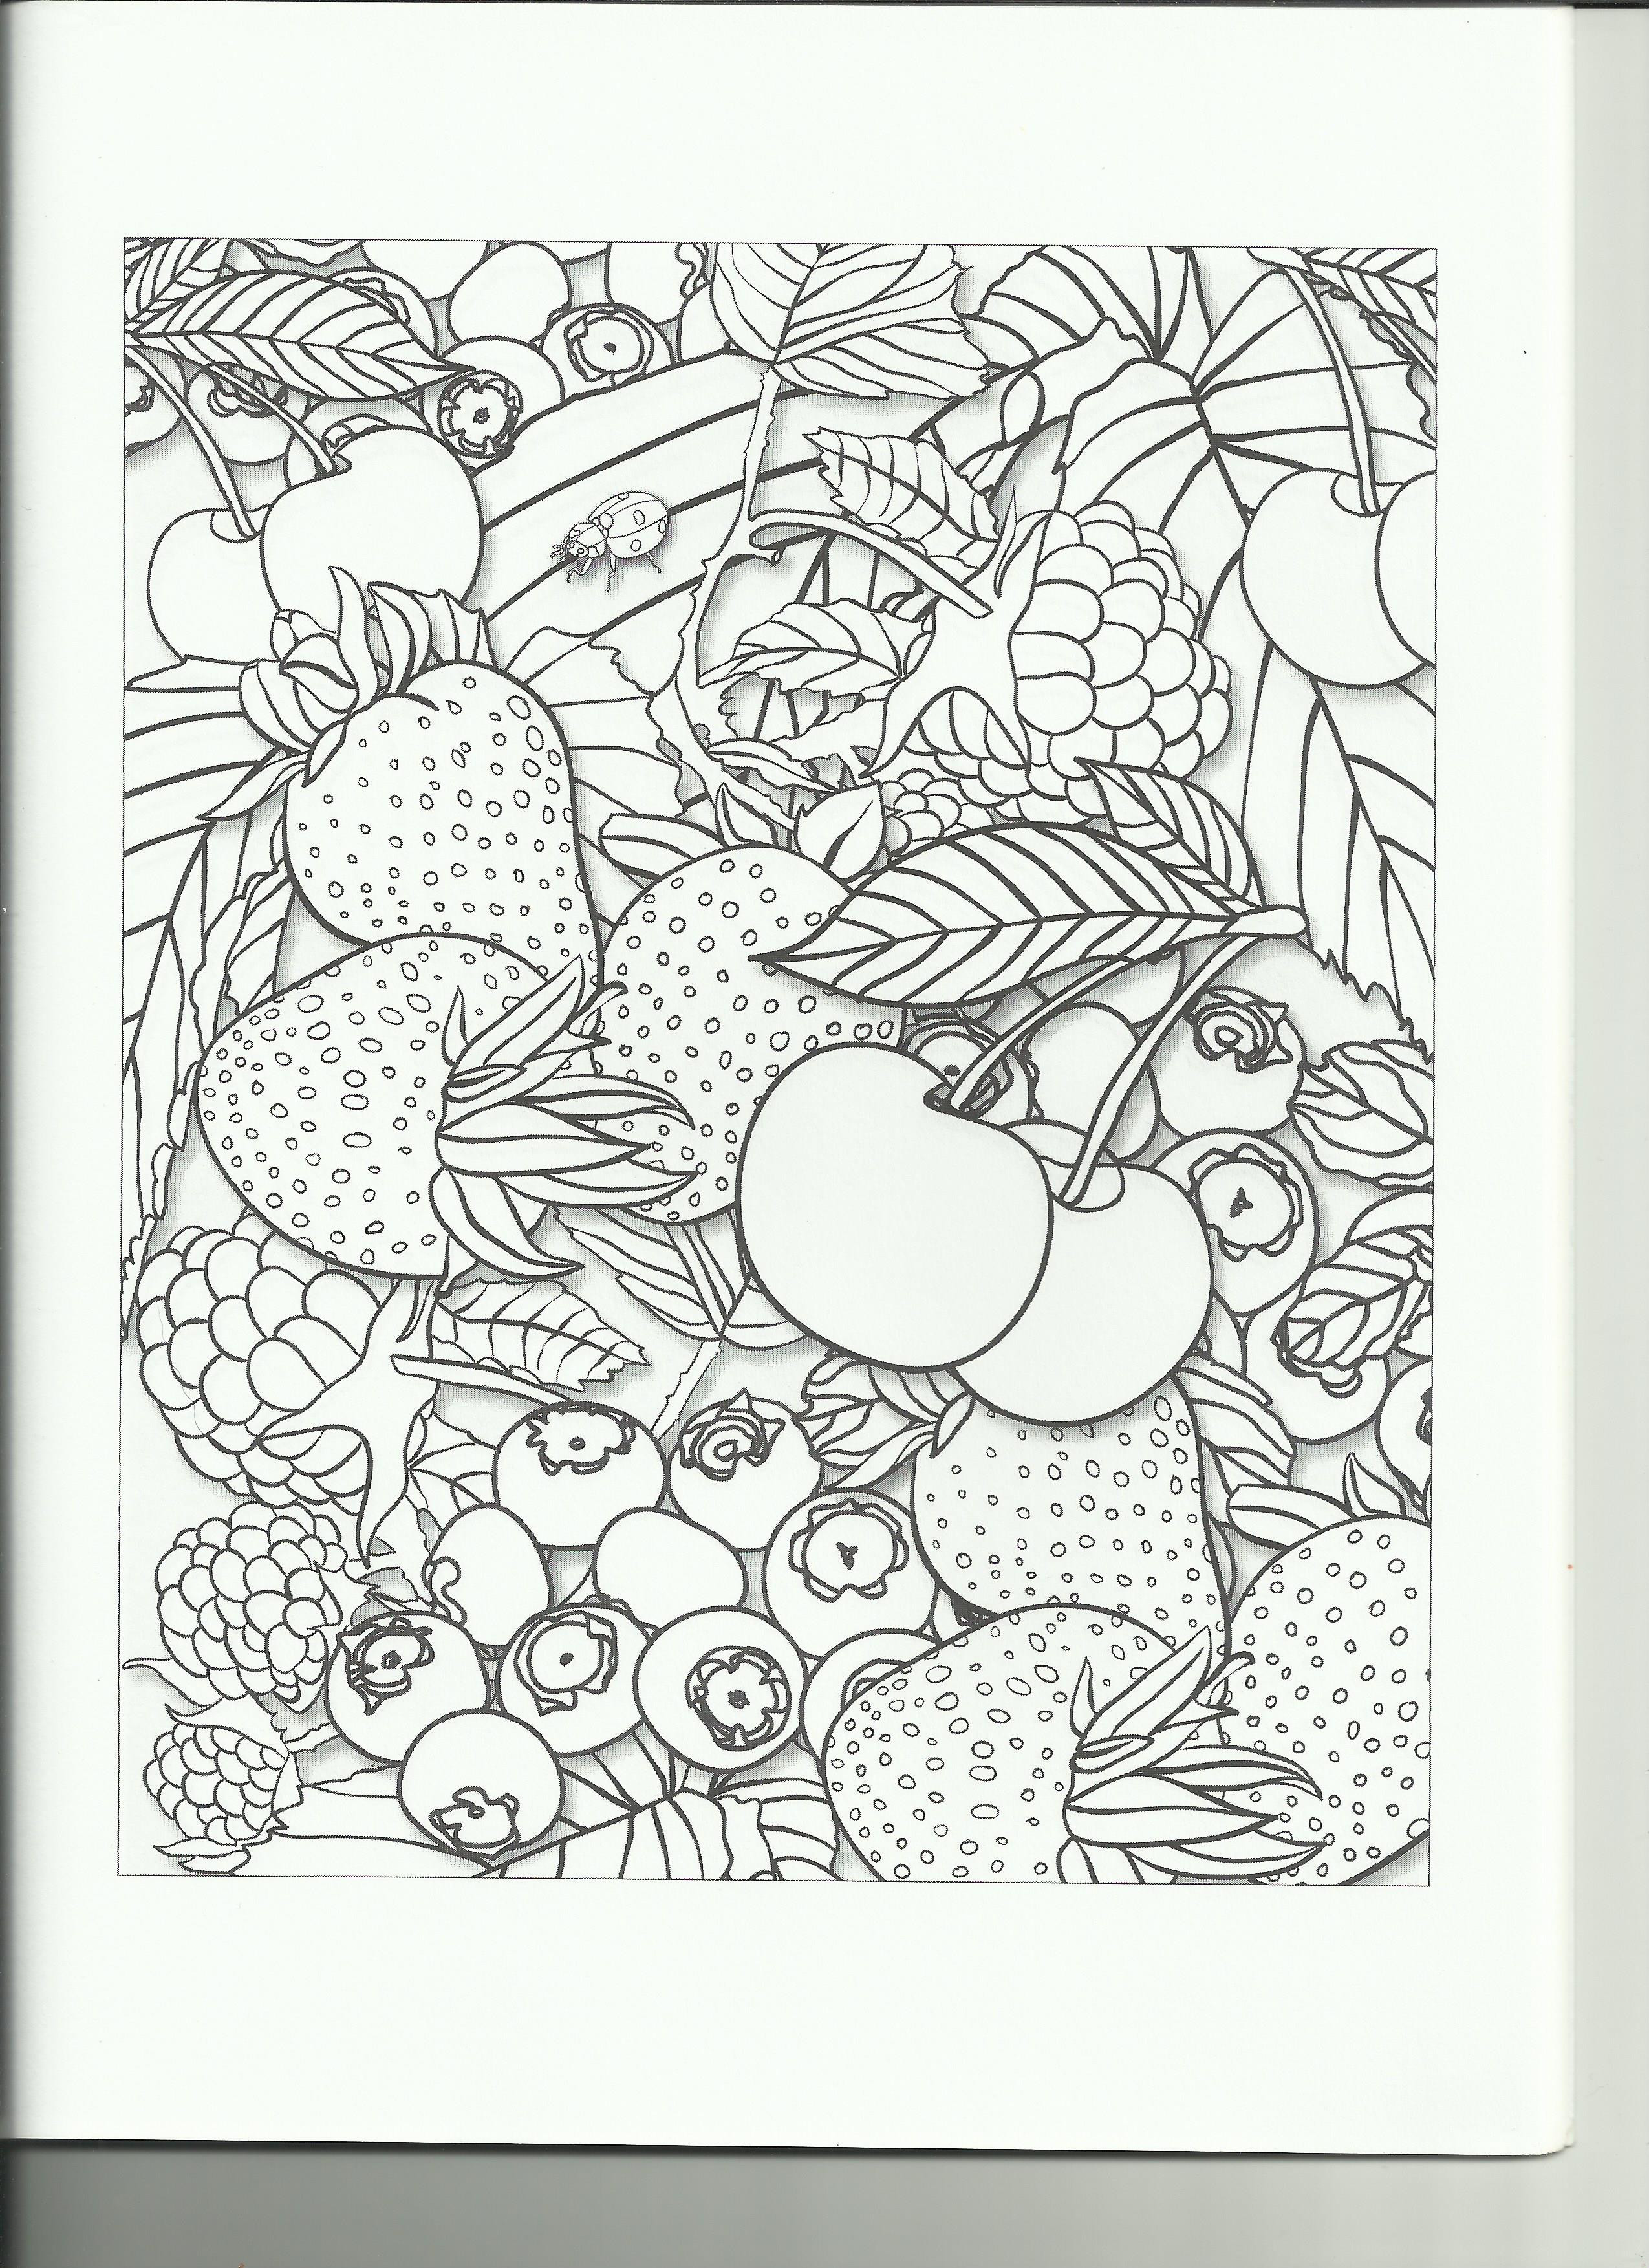 Best ideas about Fruit Coloring Pages For Adults . Save or Pin Coloring Book Review Fruit Garden Coloring Book Now.